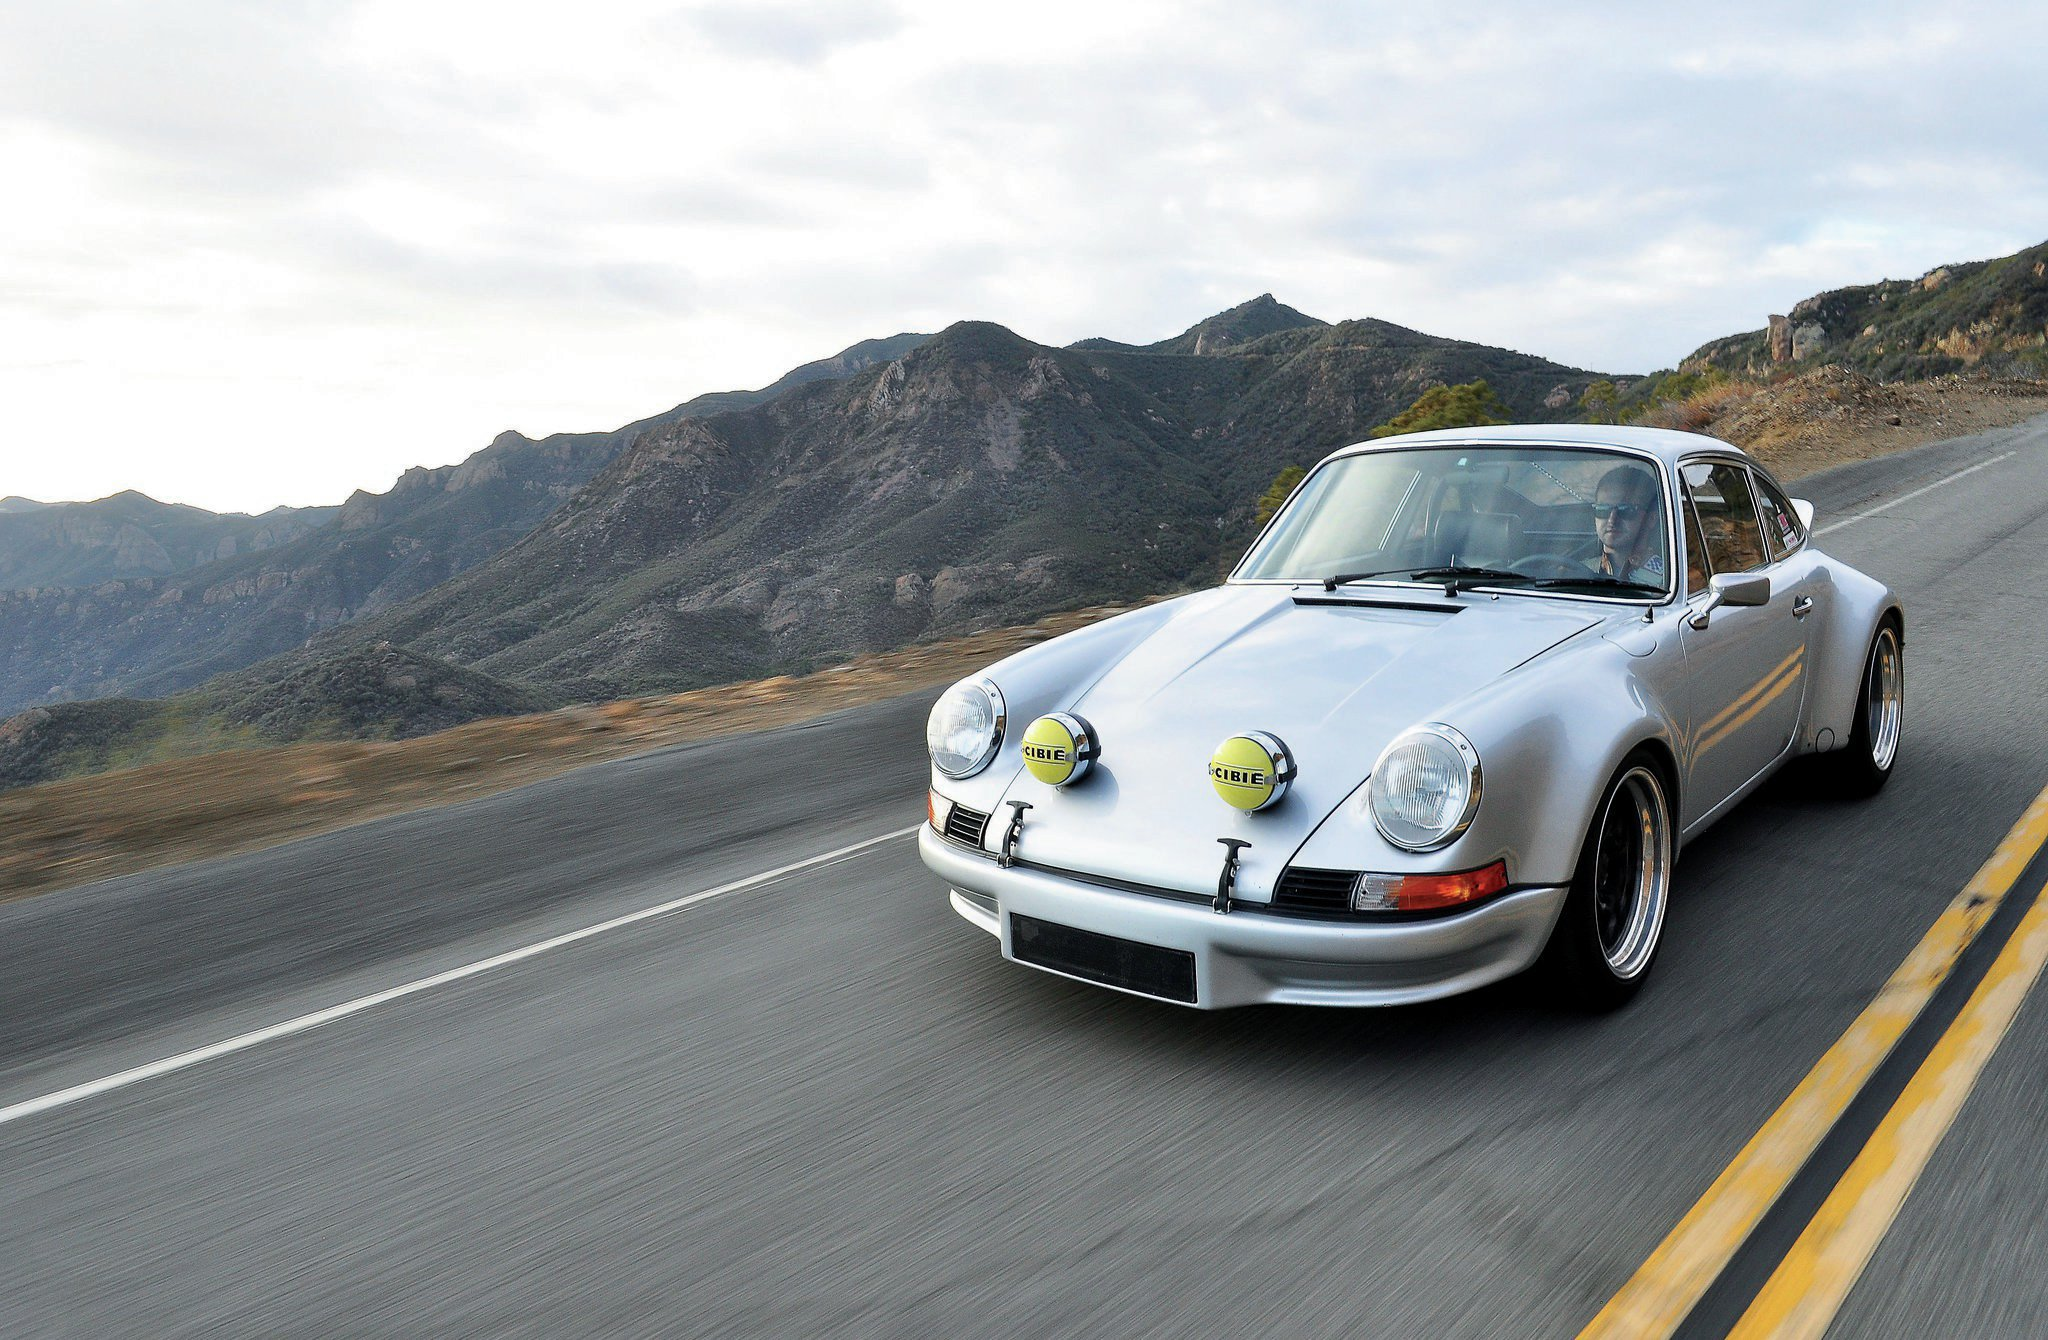 Meet The 1969 Porsche 911t Designed For Canyon Carving